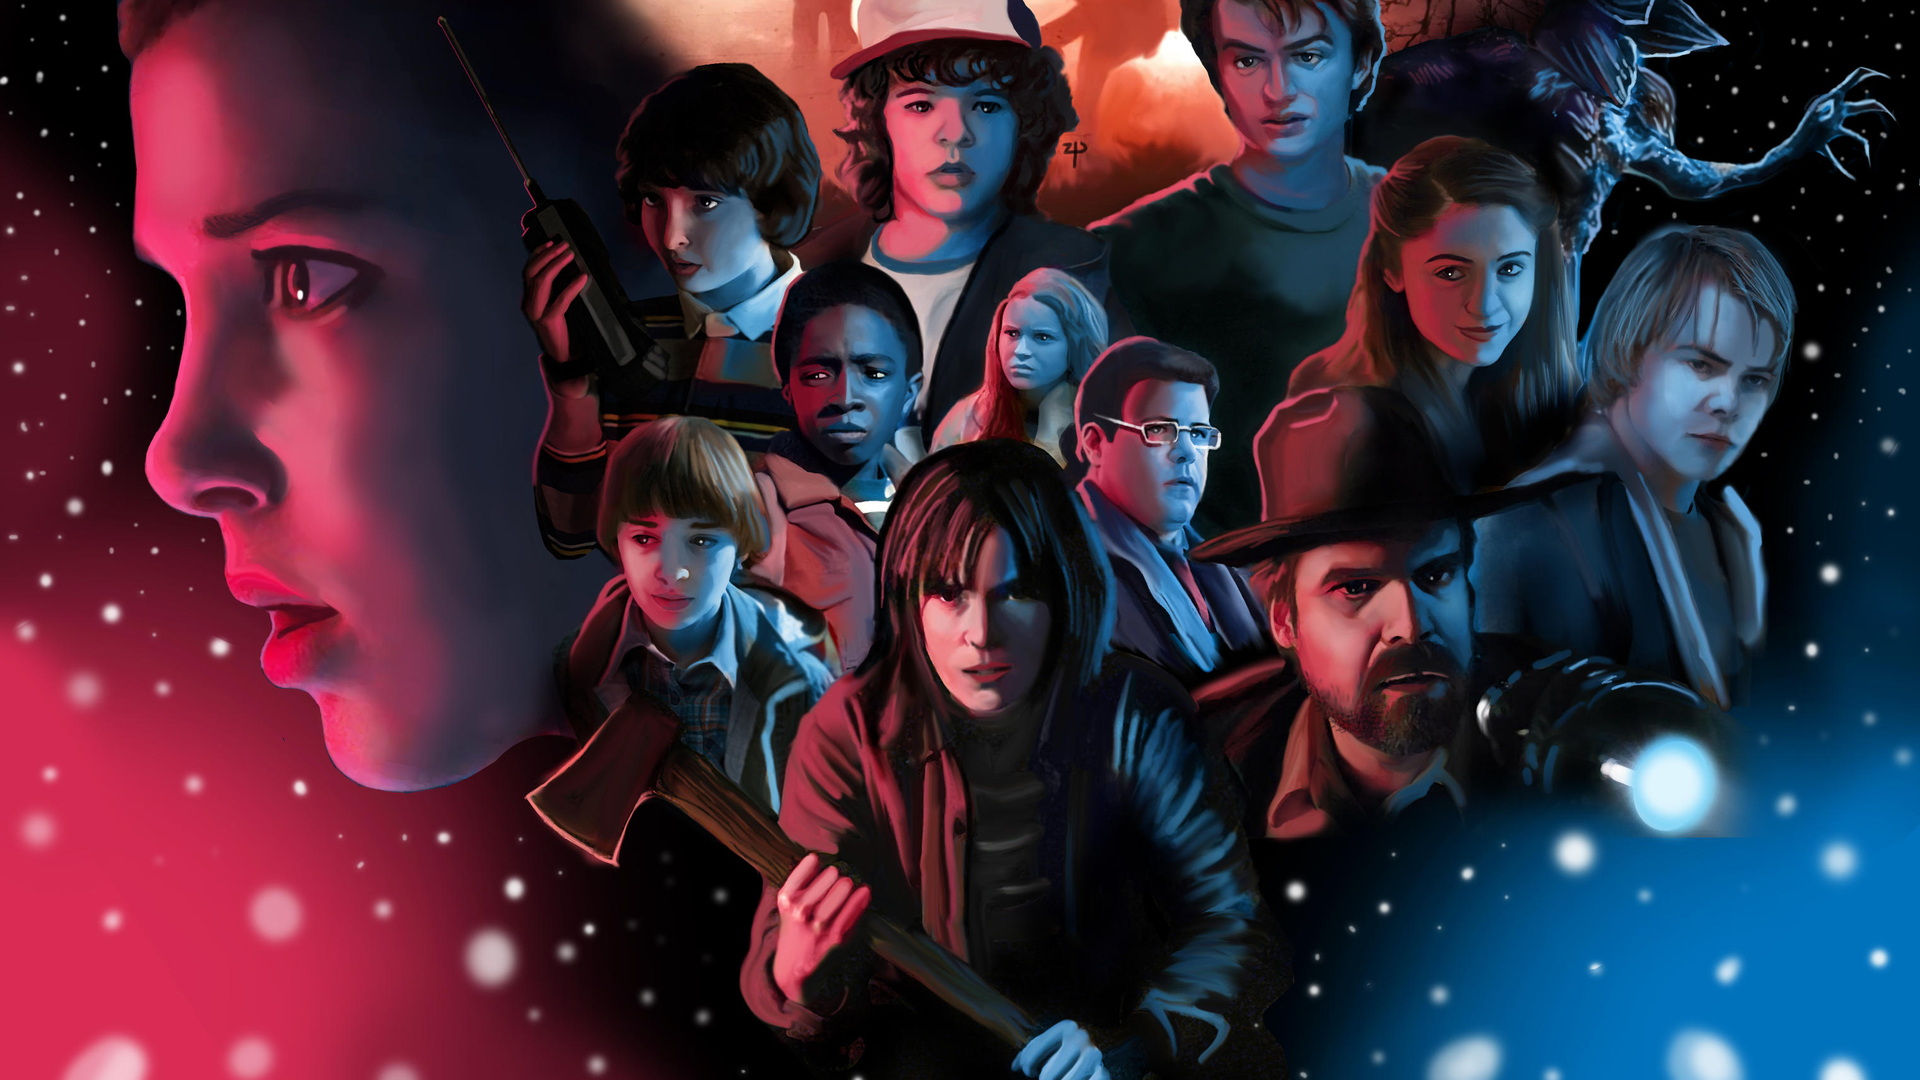 Stranger Things 2 Desktop Wallpaper Posted By Zoey Cunningham